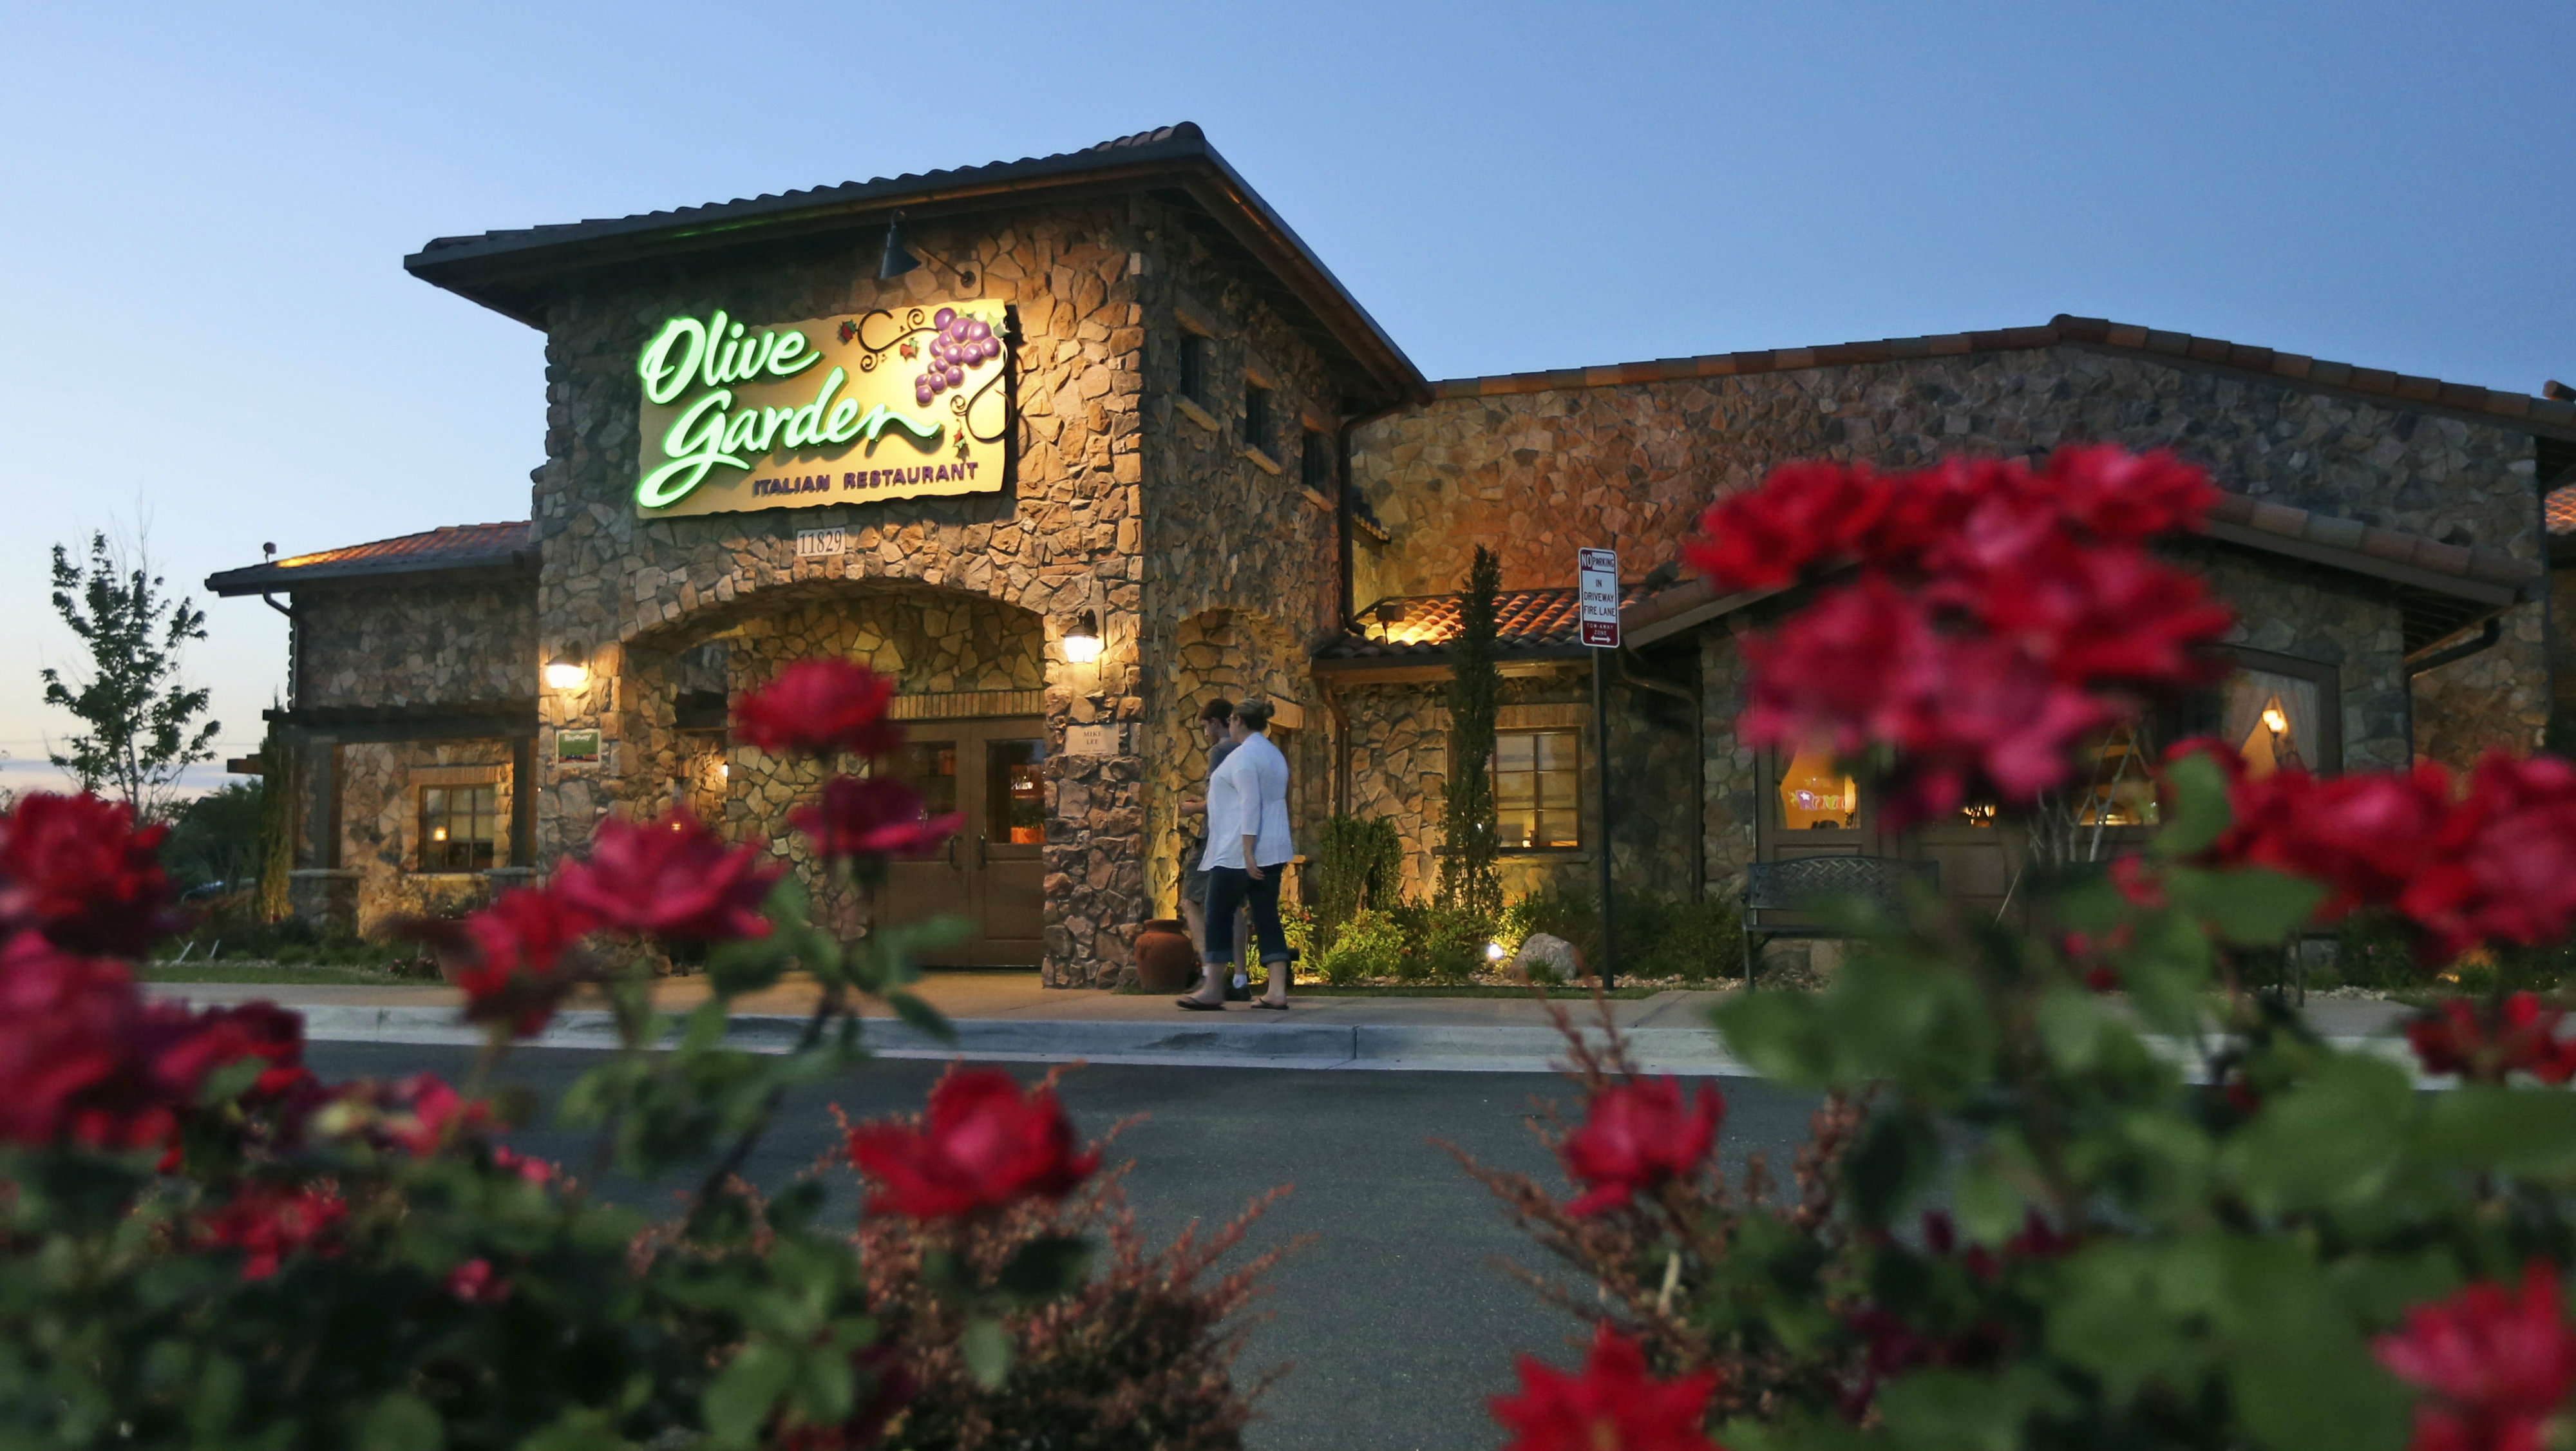 Olive garden hours today